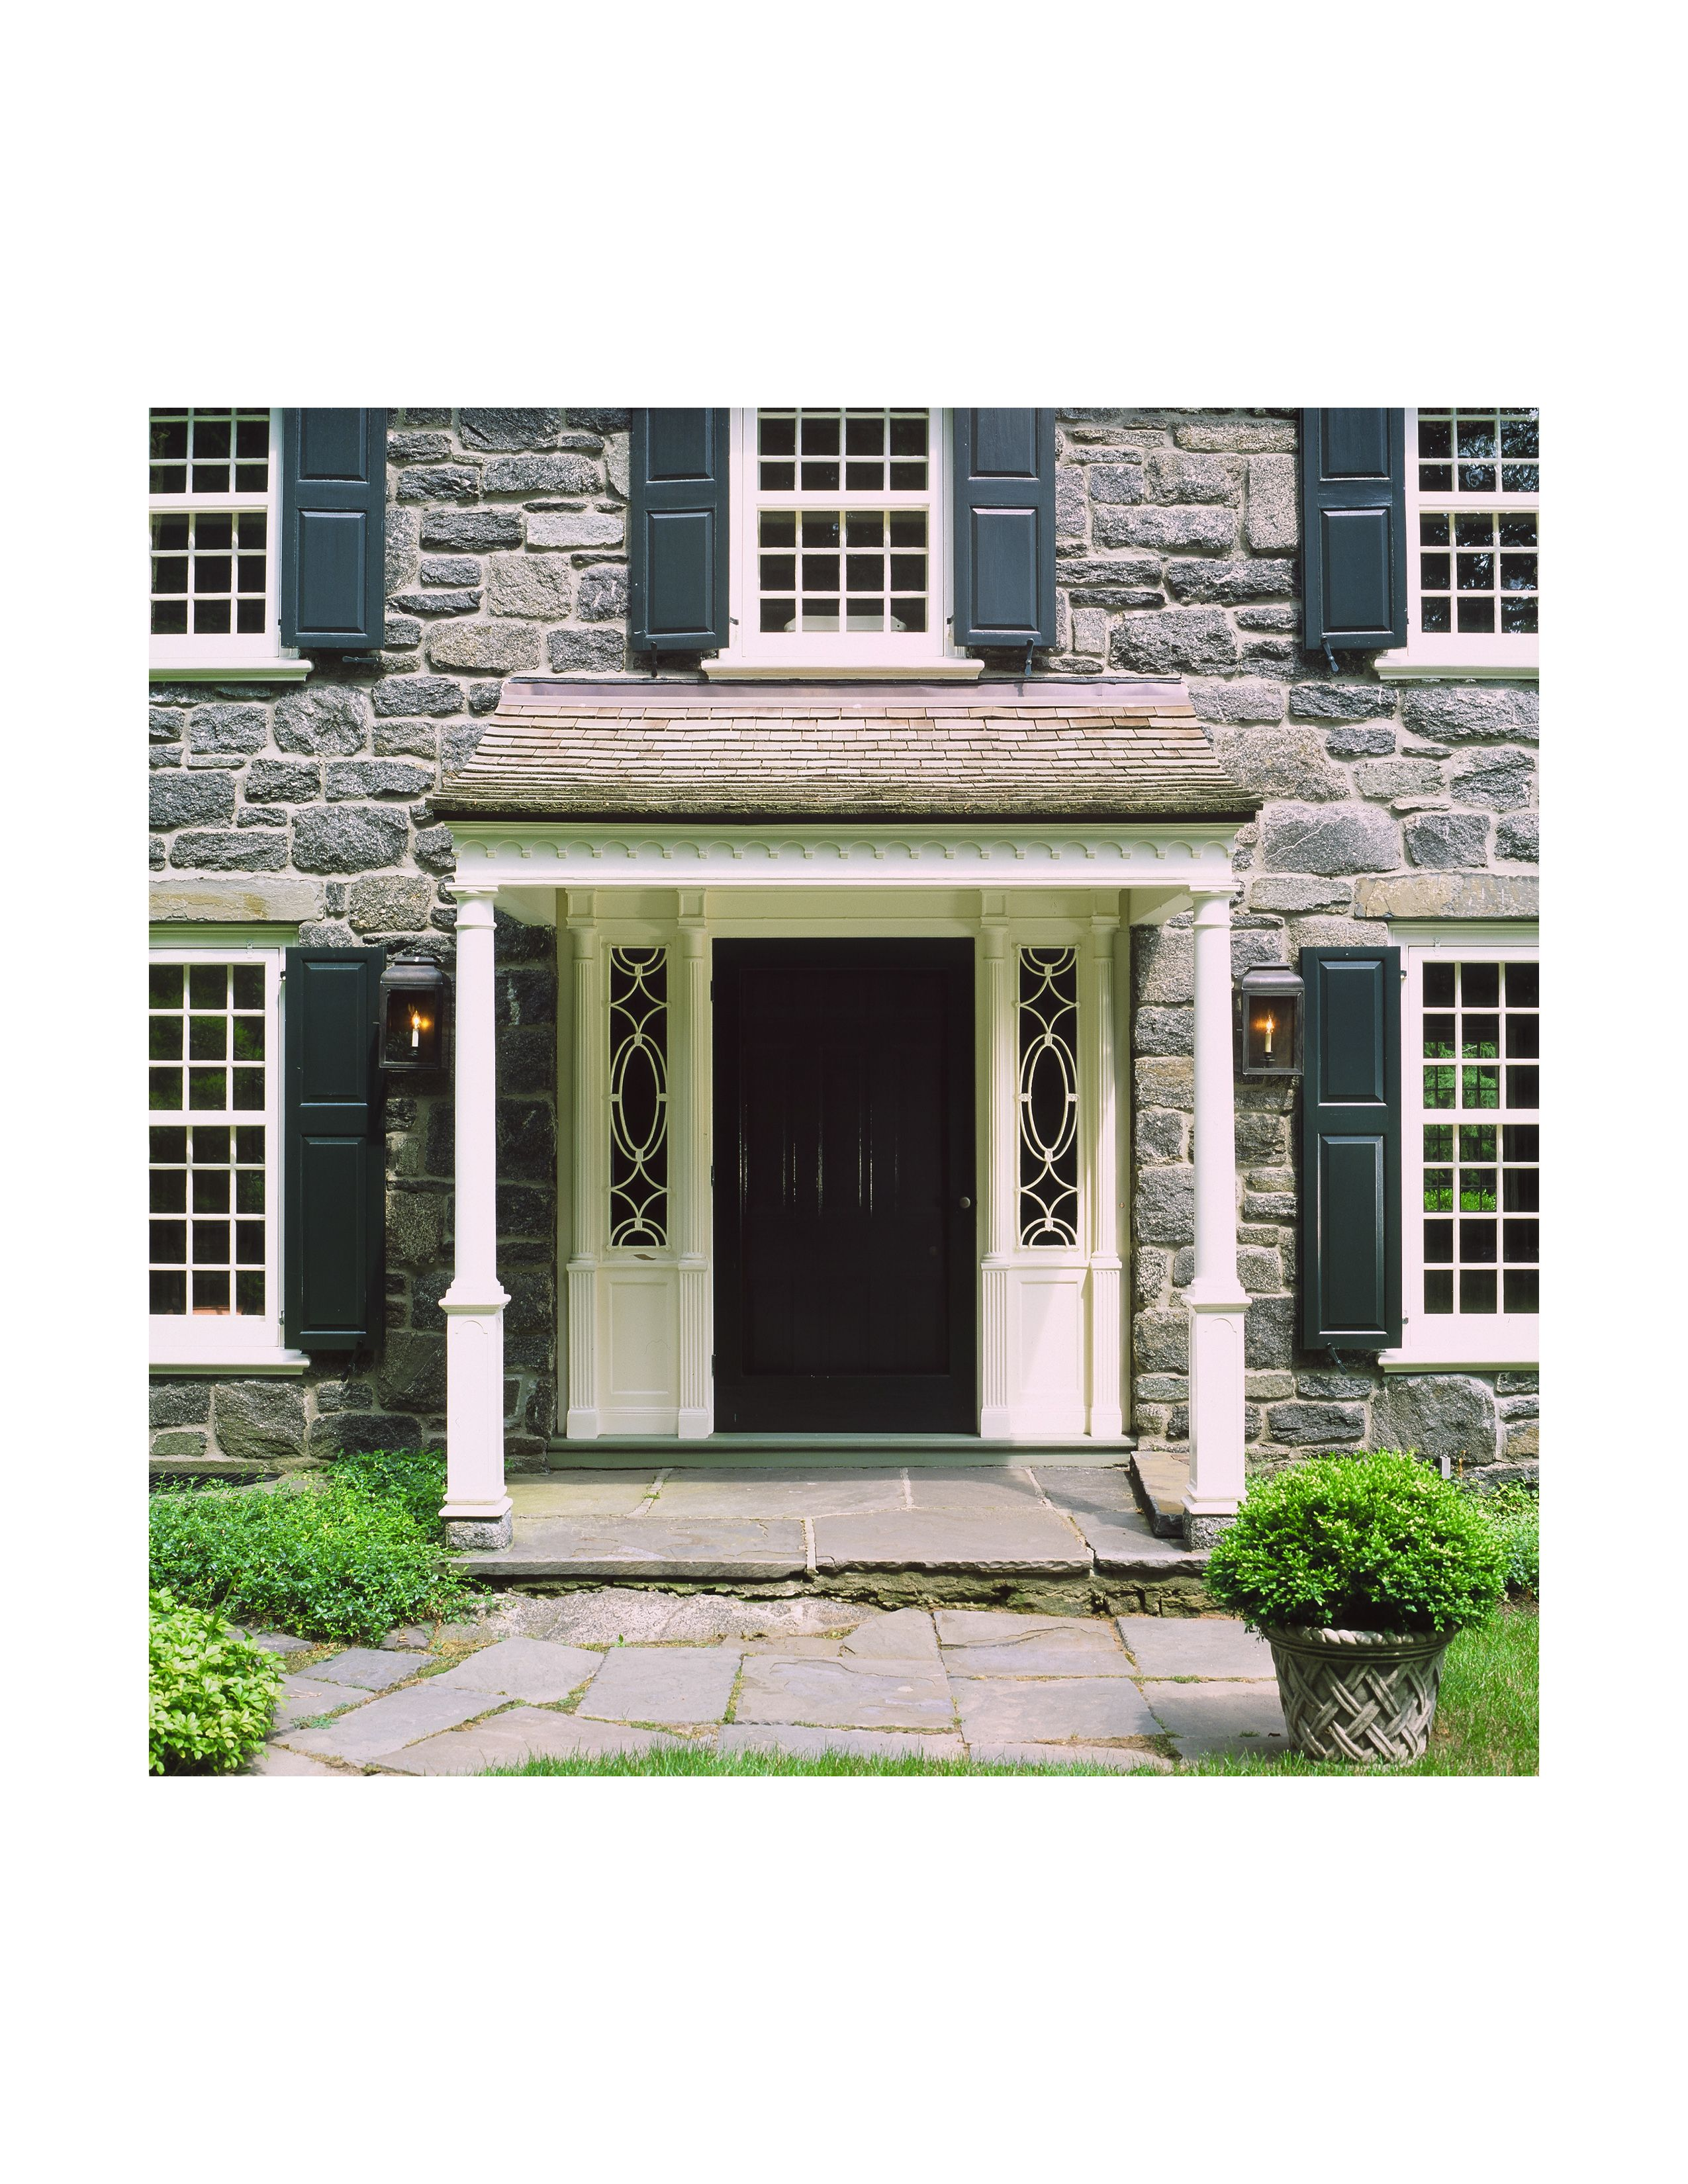 Window design beside front door Fairfield County Architects Brooks and Falotico  sc 1 st  Pinterest & Greenwich CT | Brooks and Falotico Associates Fairfield County ...